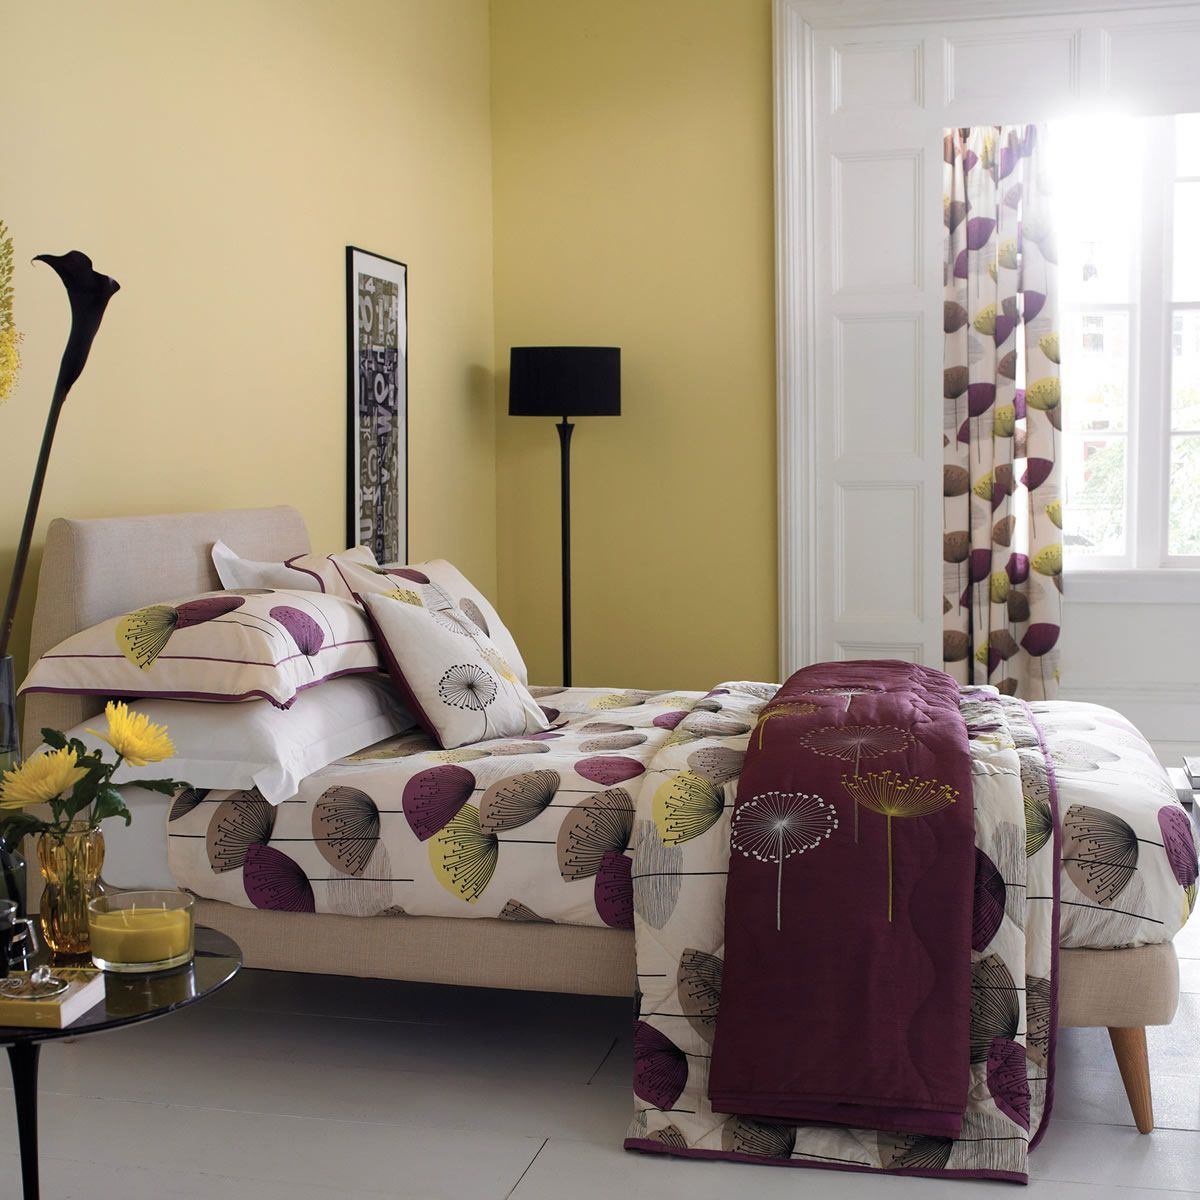 2015 08 decorating with plum and damson - Sanderson Dandelion Clocks Damson Justlinen